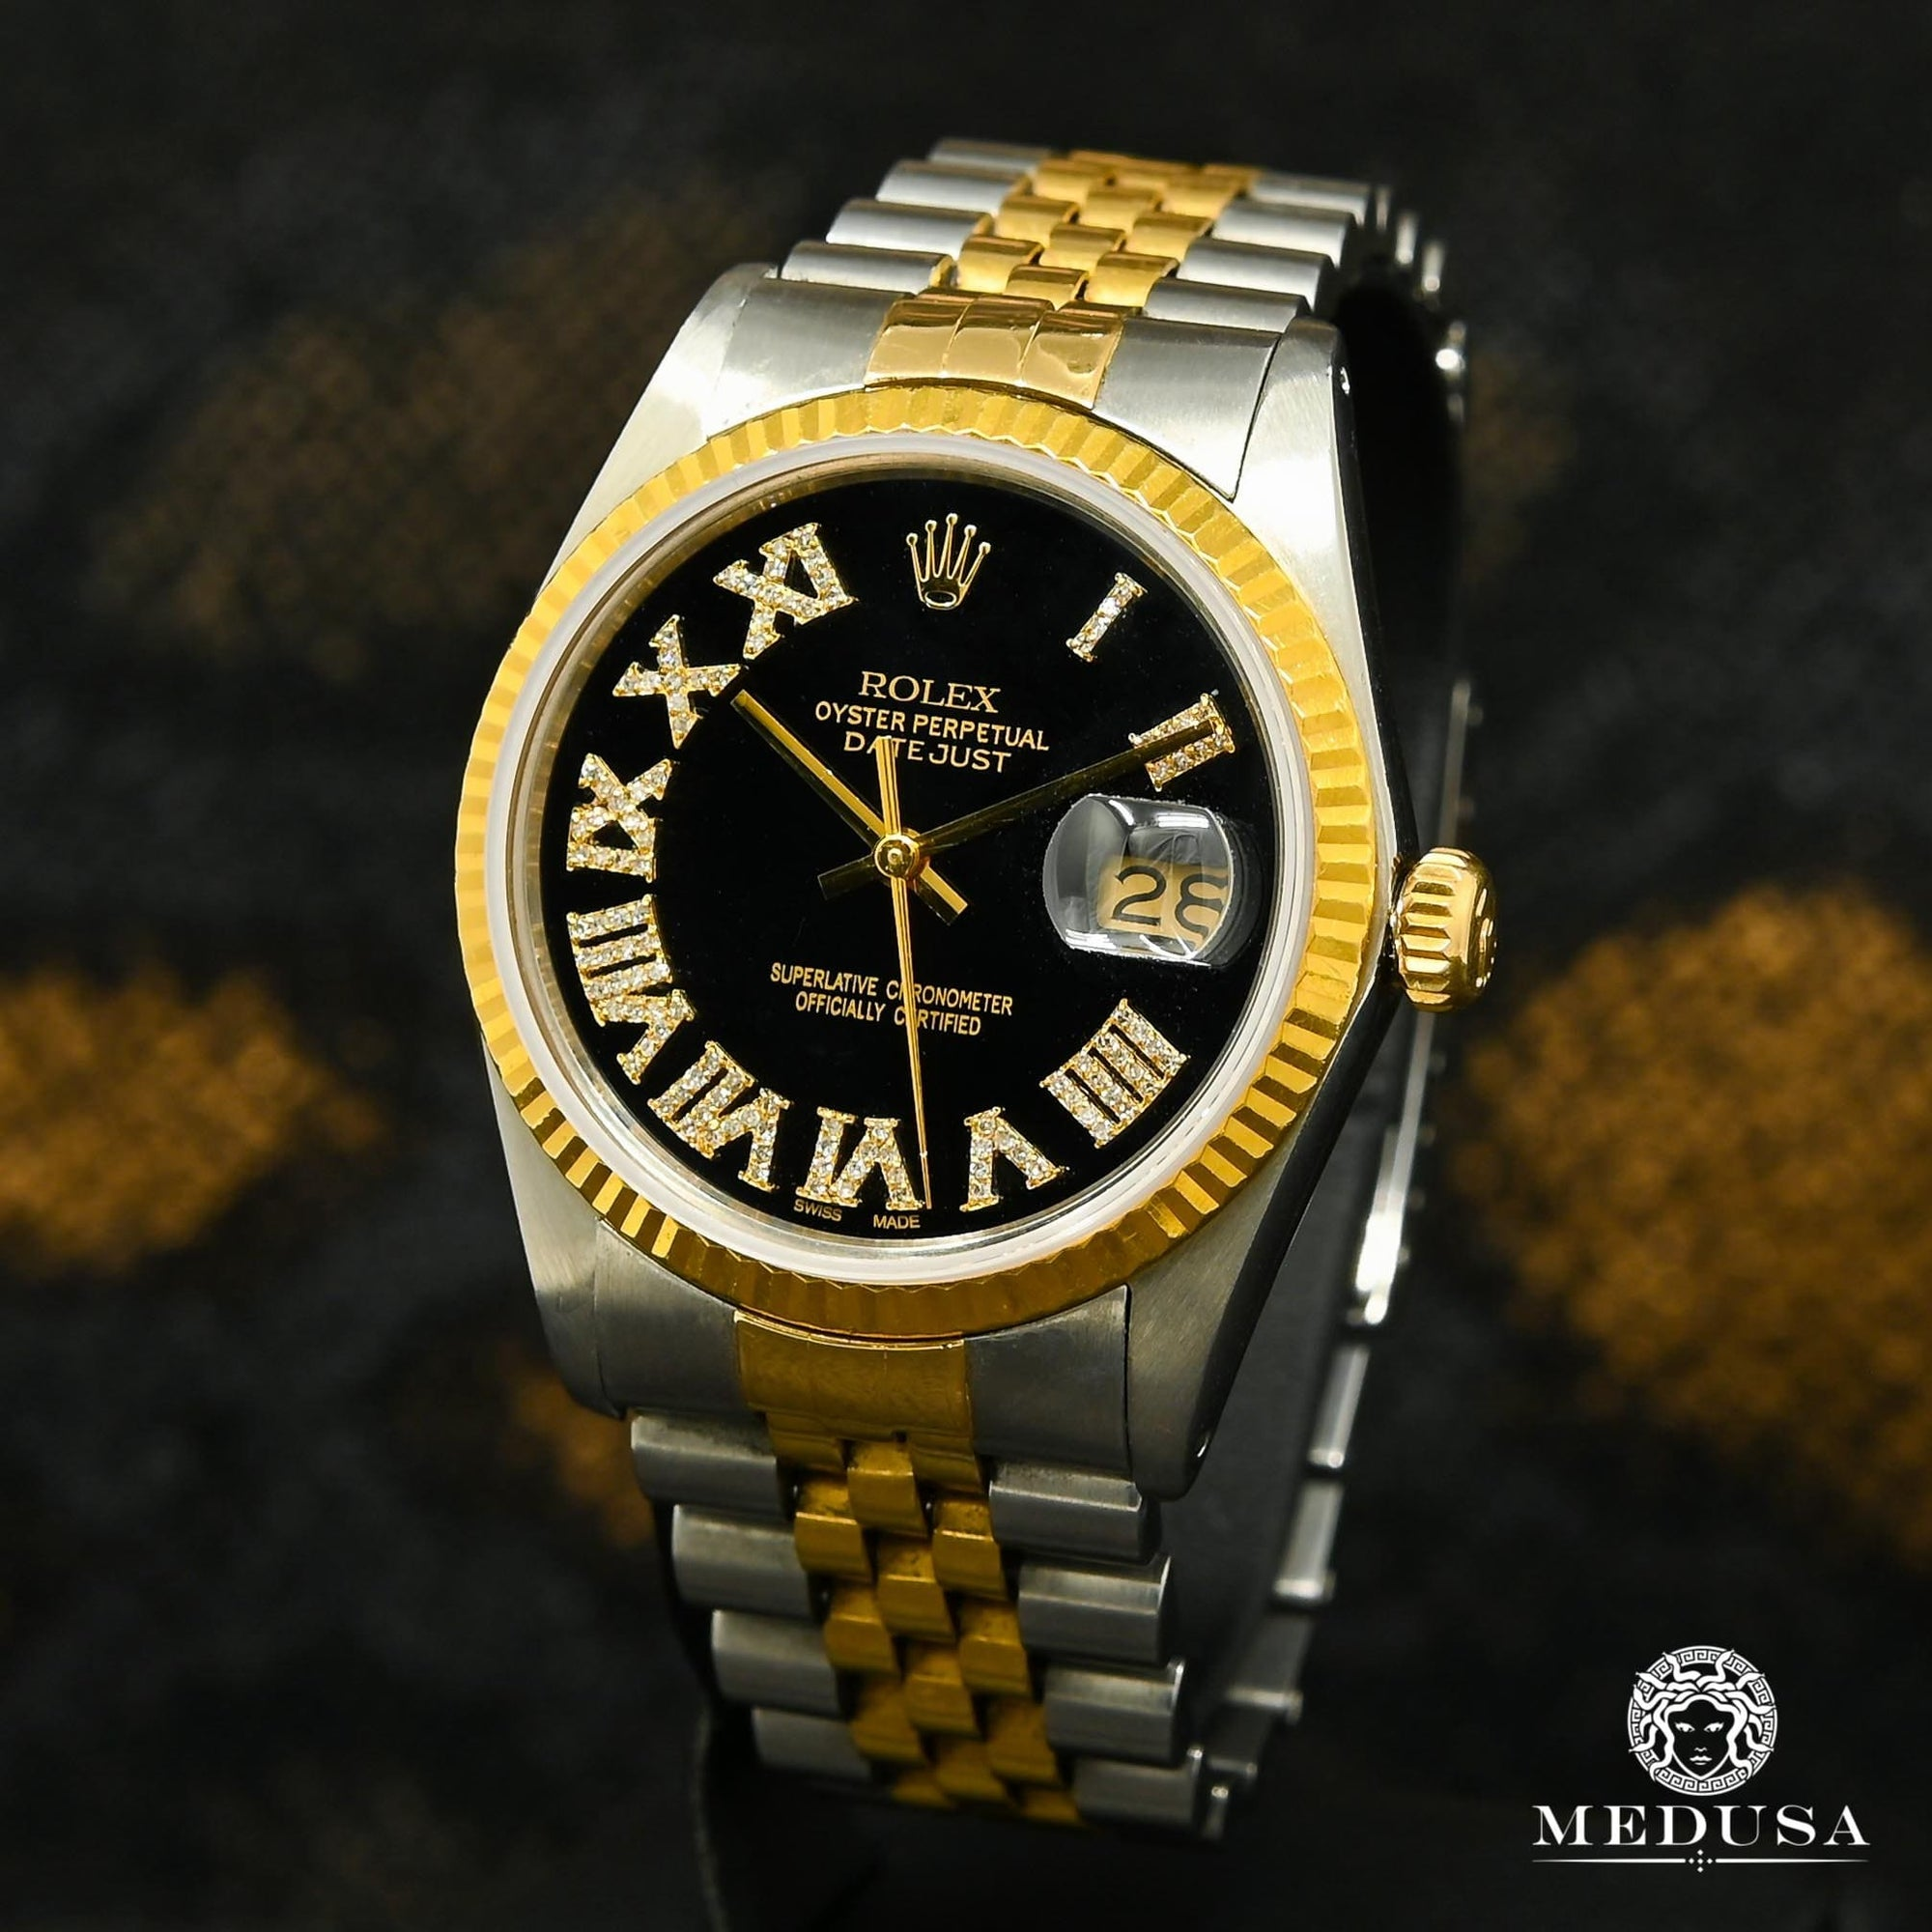 Montre Rolex | Montre Homme Rolex Datejust 36mm - Noir Romain Or 2 Tons